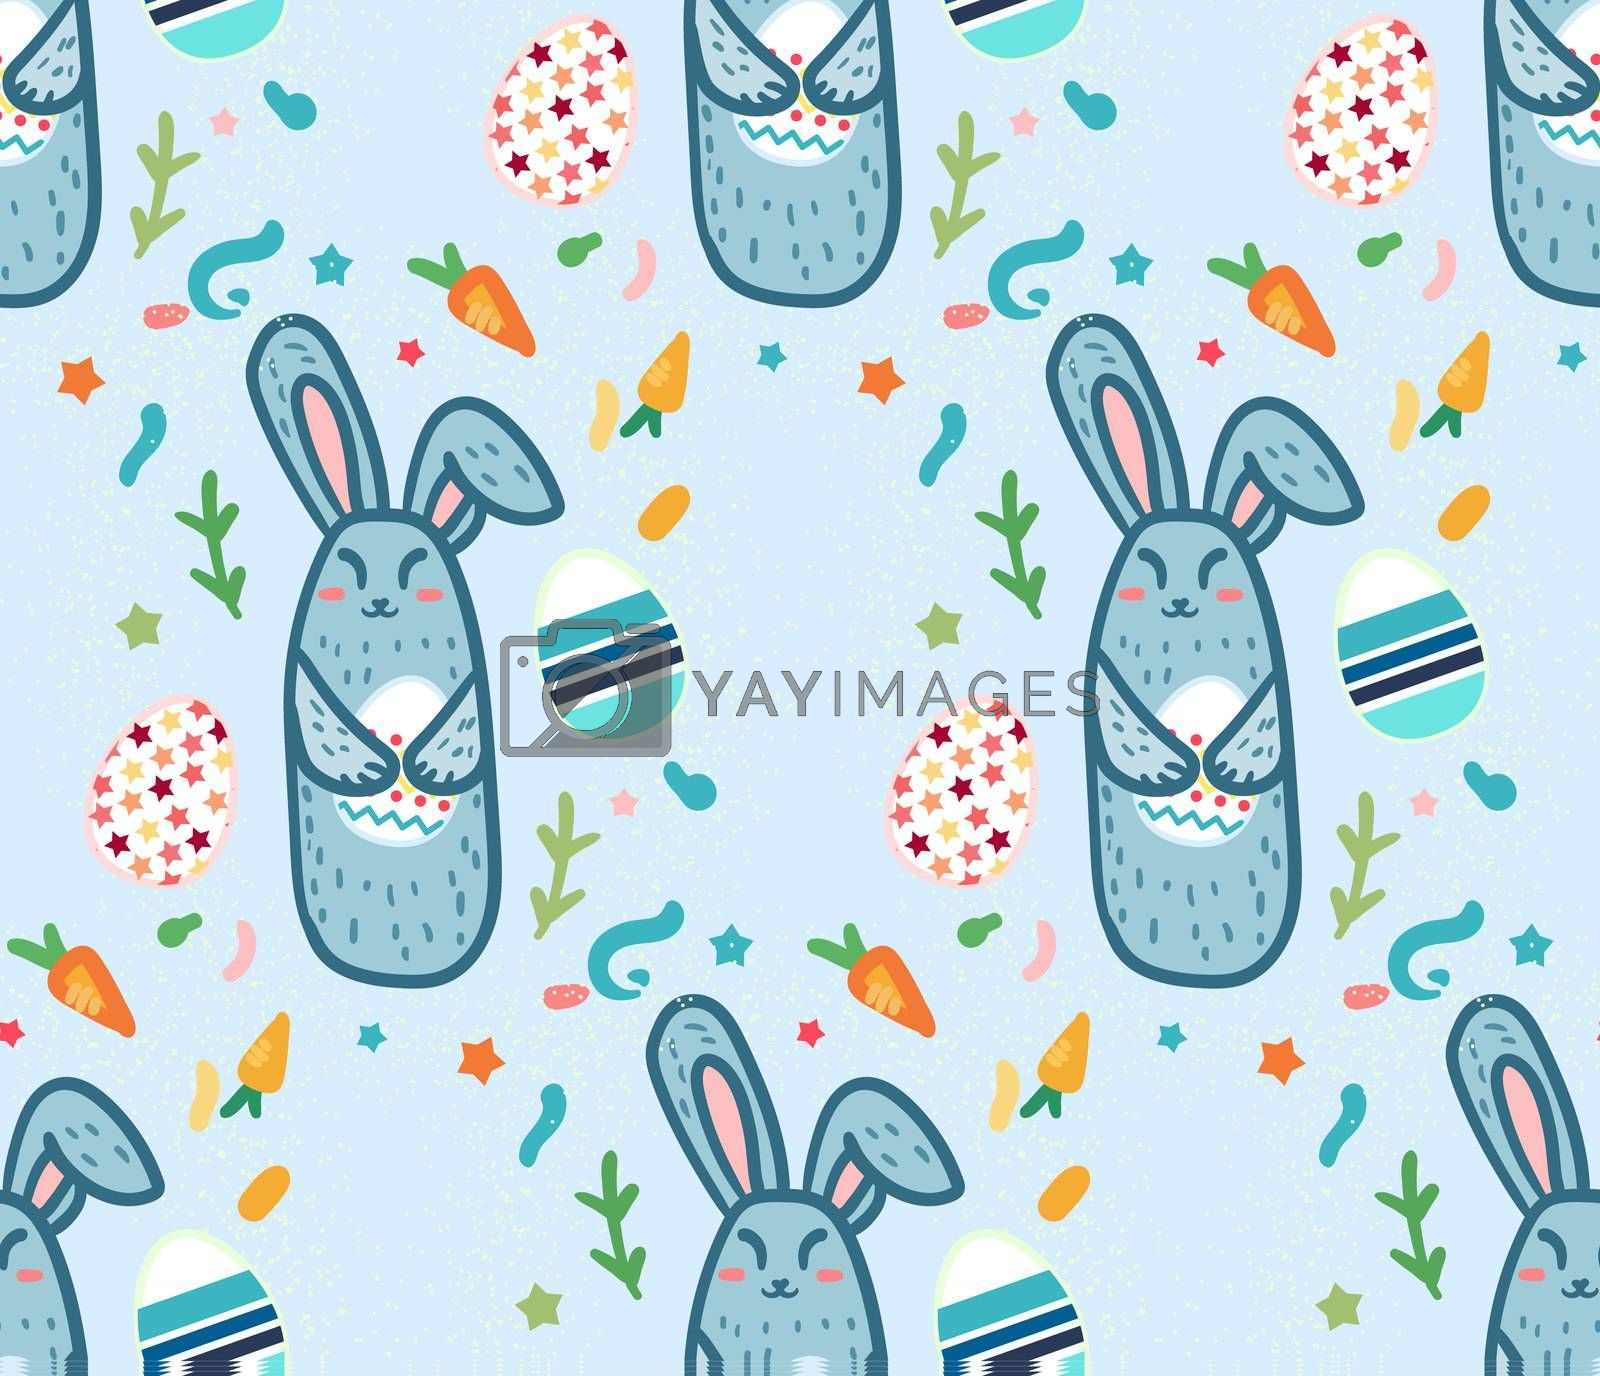 Happy Easter Seamless Pattern with cute rabbit and eggs.  Template for print, fabric, wrapping, wallpaper, greeting background. Vector